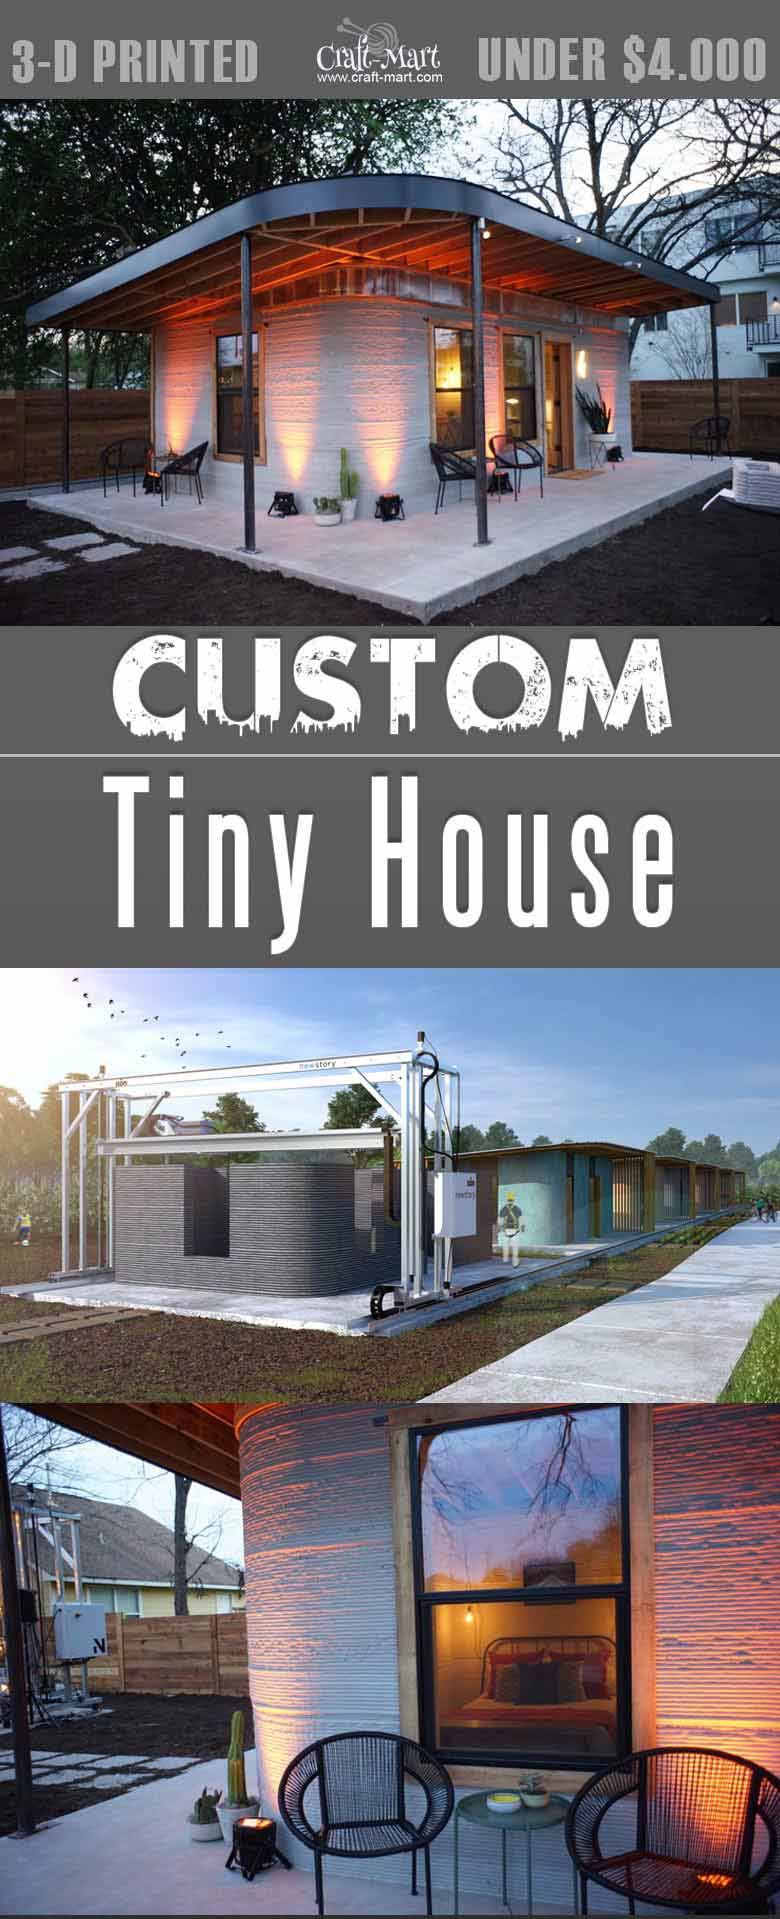 3-d printed custom tiny house that you can afford! Some tiny houses are 100% sustainable and do NOT need any utilities besides internet! Some are DIY and you can request custom features from most of the tiny home builders.